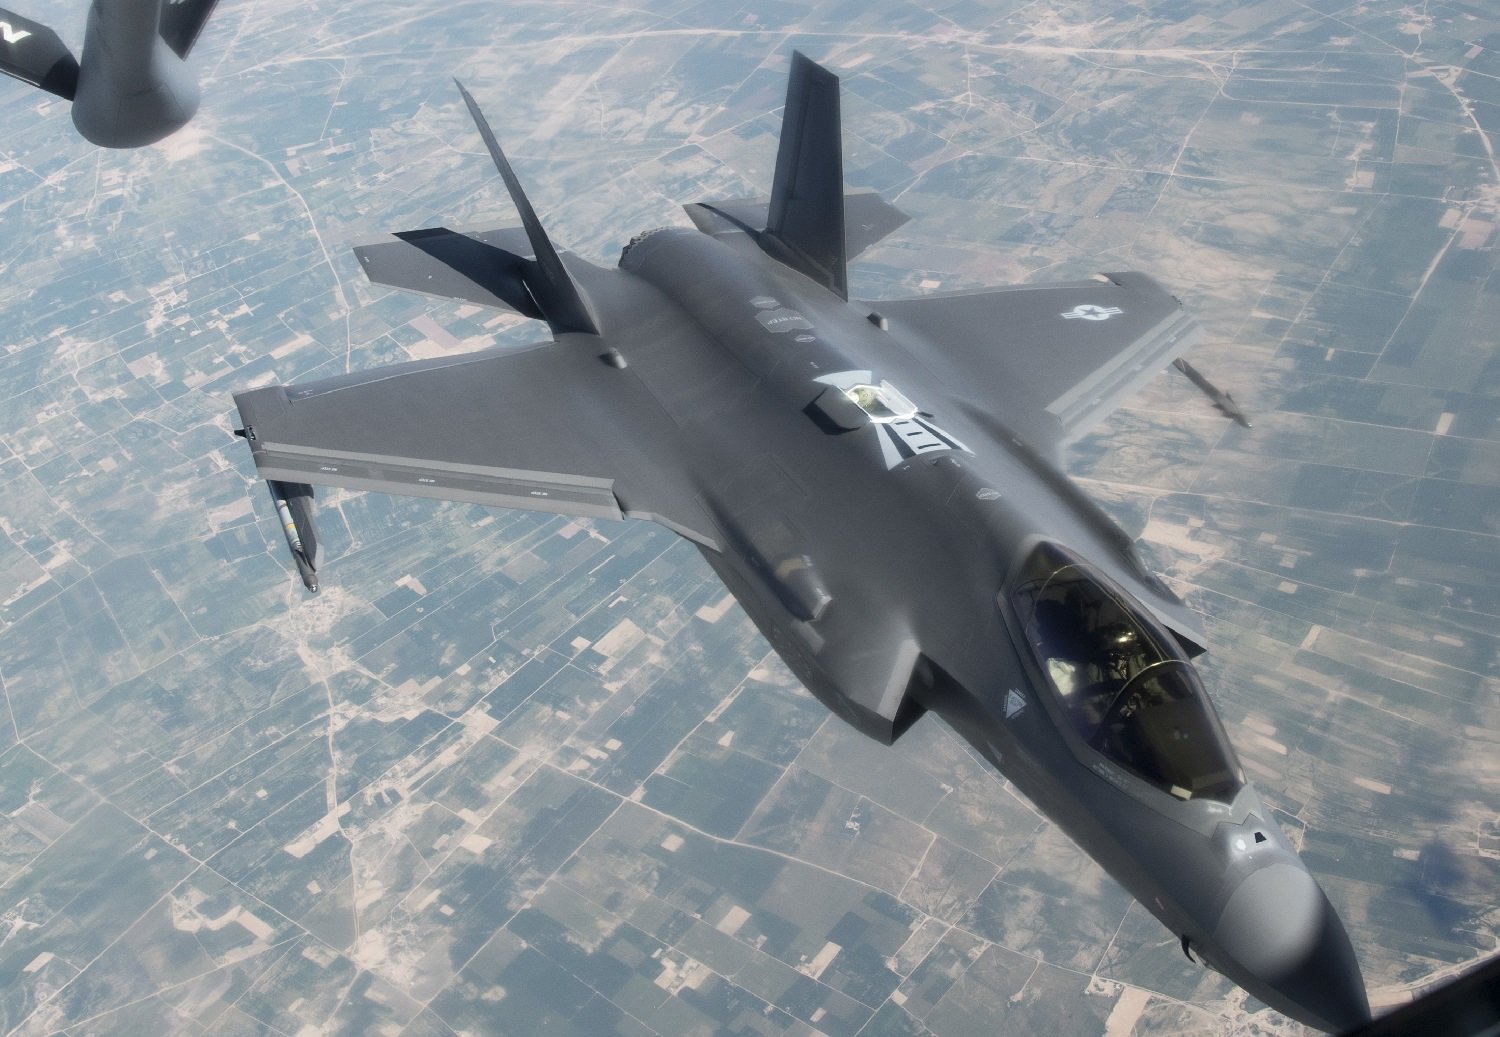 The F-35 Is Getting Old: Why 6th Generation Fighters Will Dominate Everything